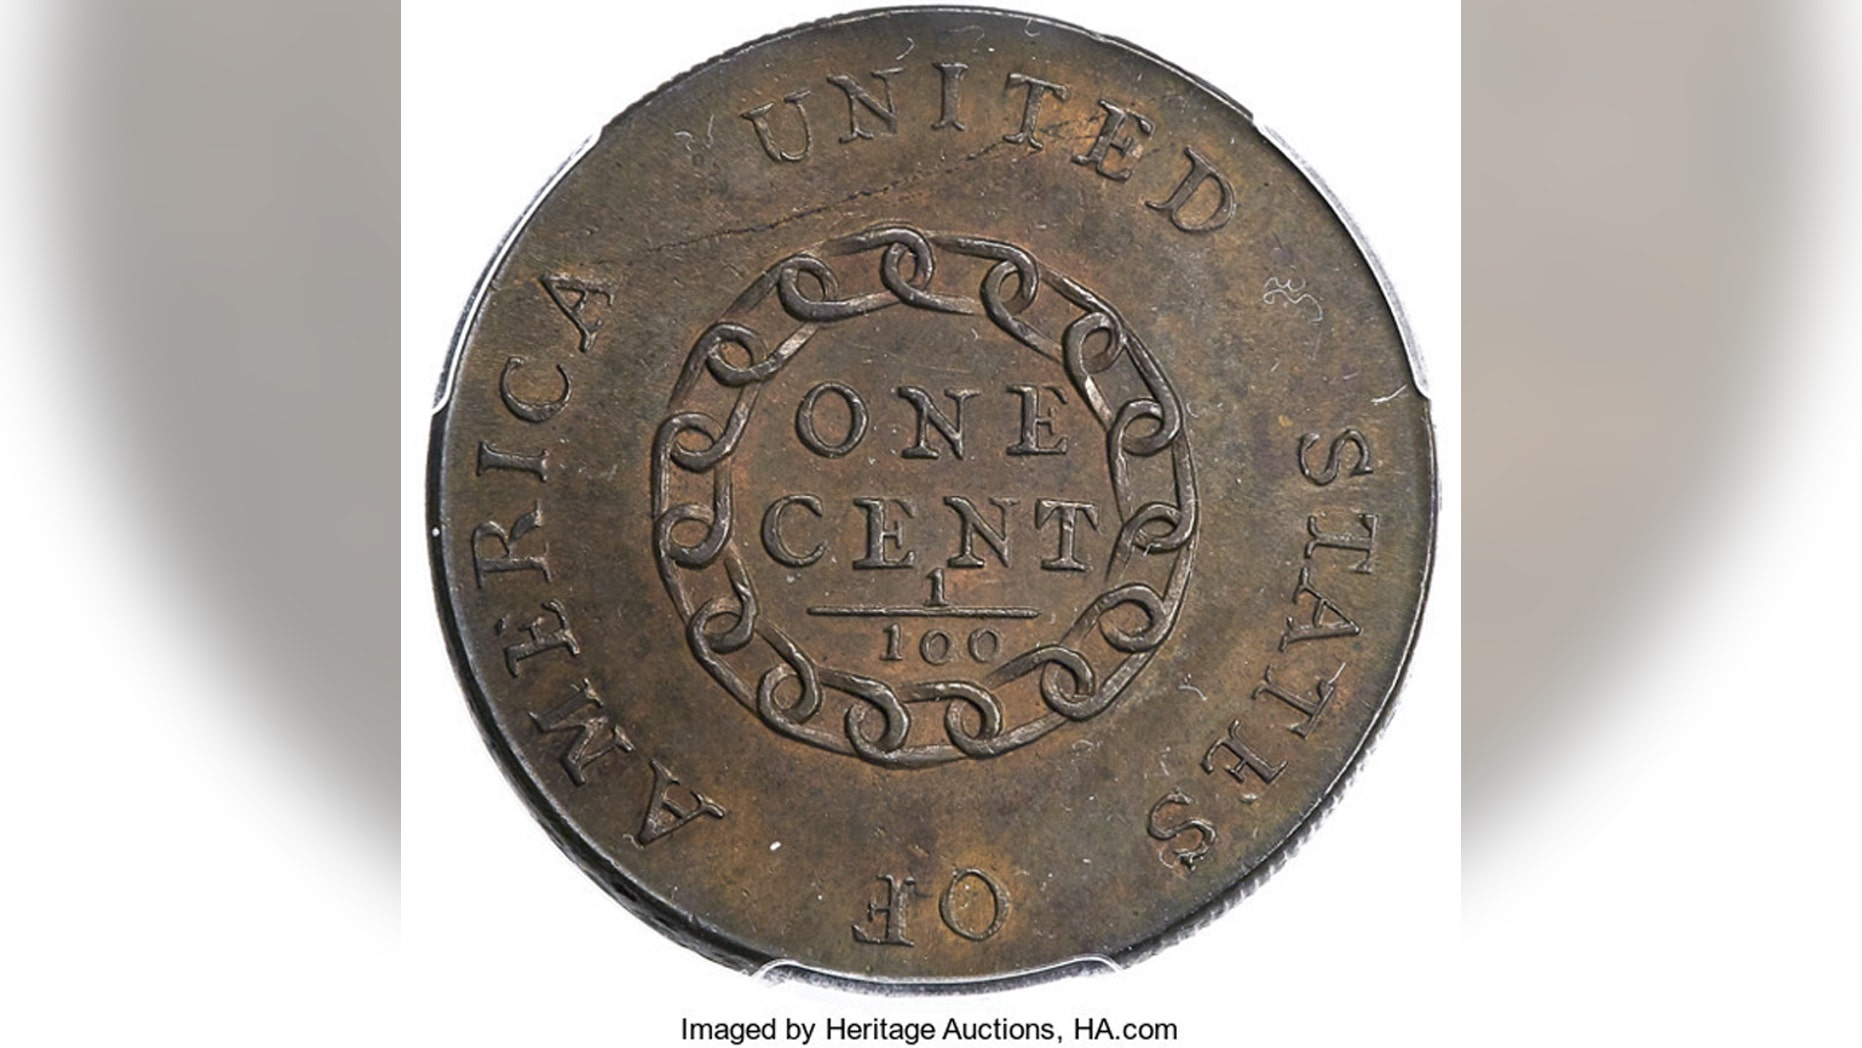 This undated image provided by Heritage Auctions shows a 1793 cent made by the U.S. mint in Philadelphia. The penny went up for auction at the annual Florida Numismatic Convention in Tampa, Fla., this week. (Heritage Auctions via AP)